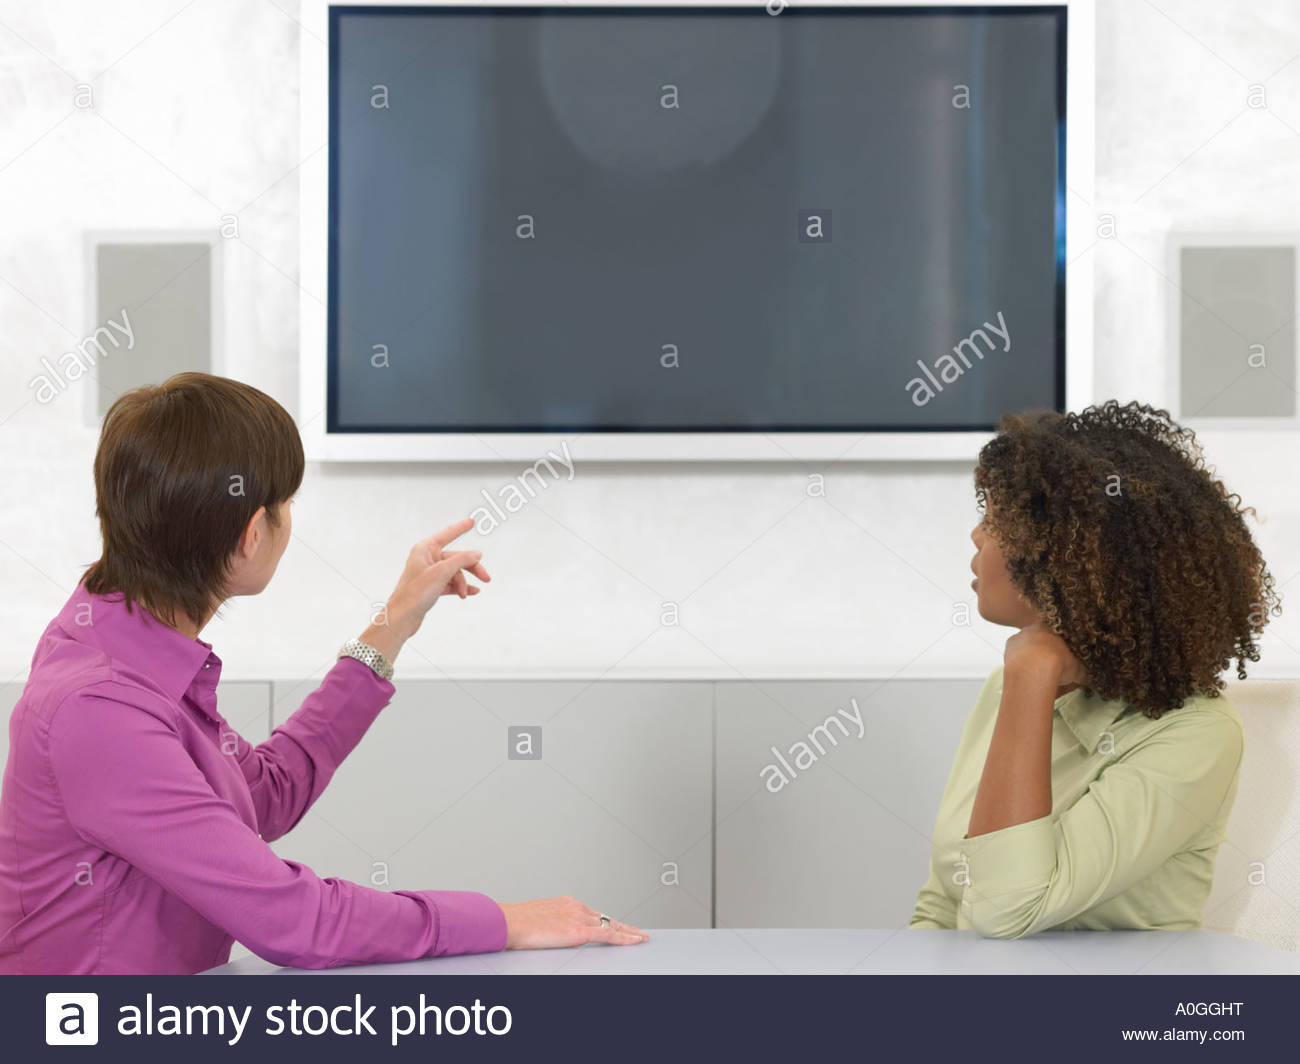 Colleagues looking at video screen - Stock Image